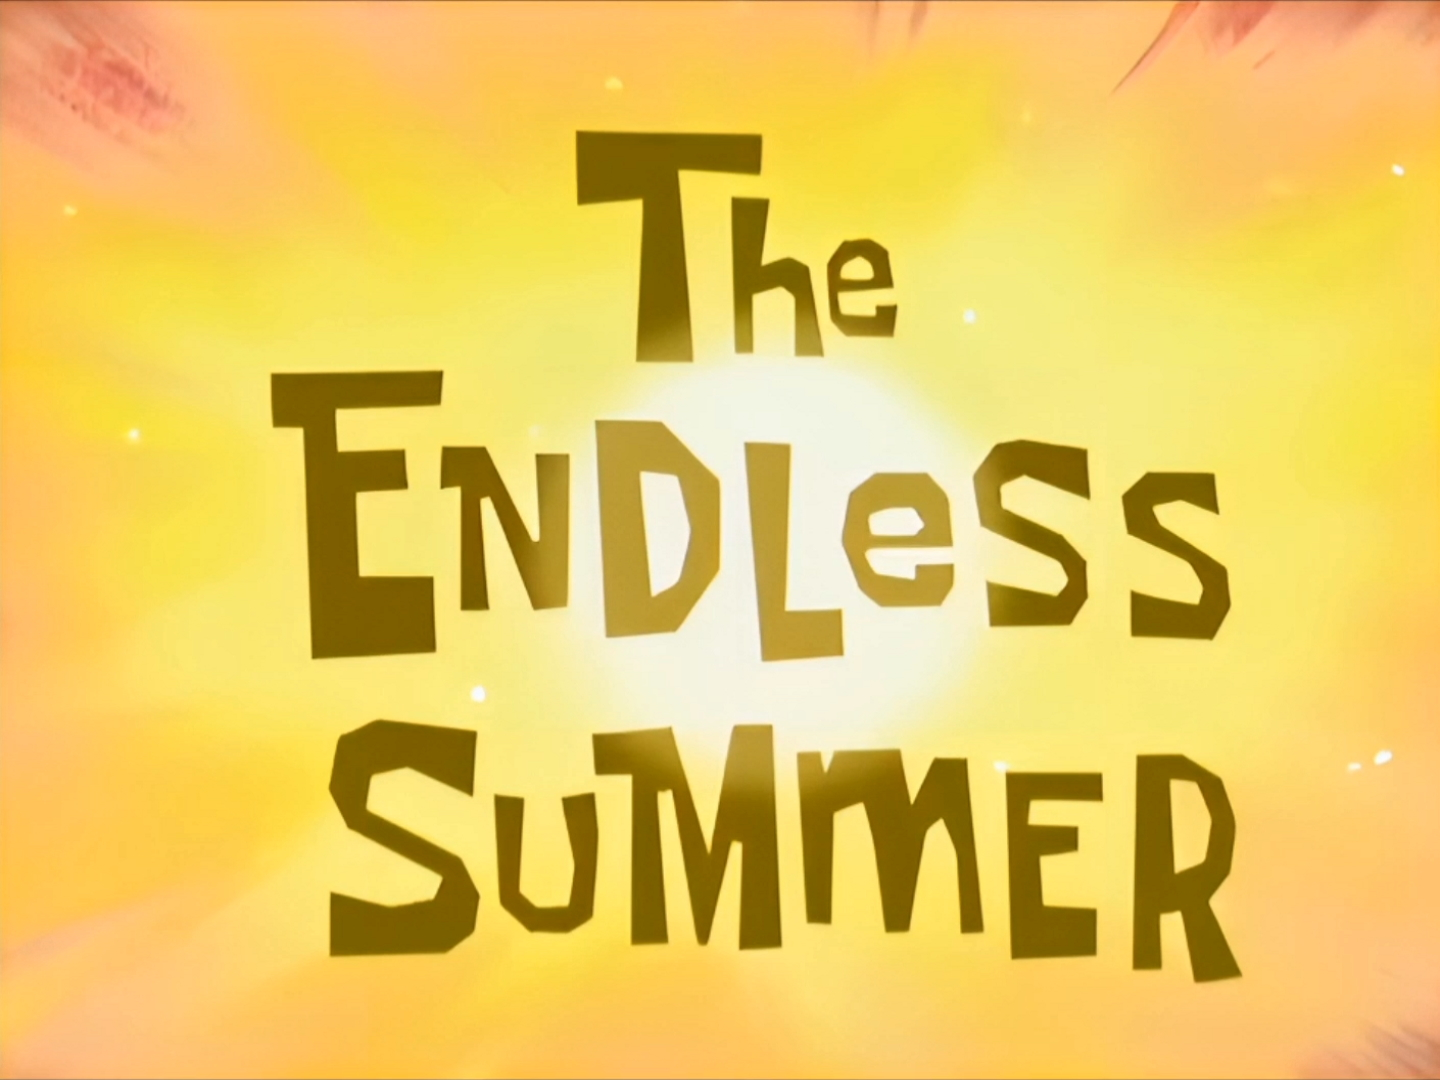 File:The Endless Summer.jpg